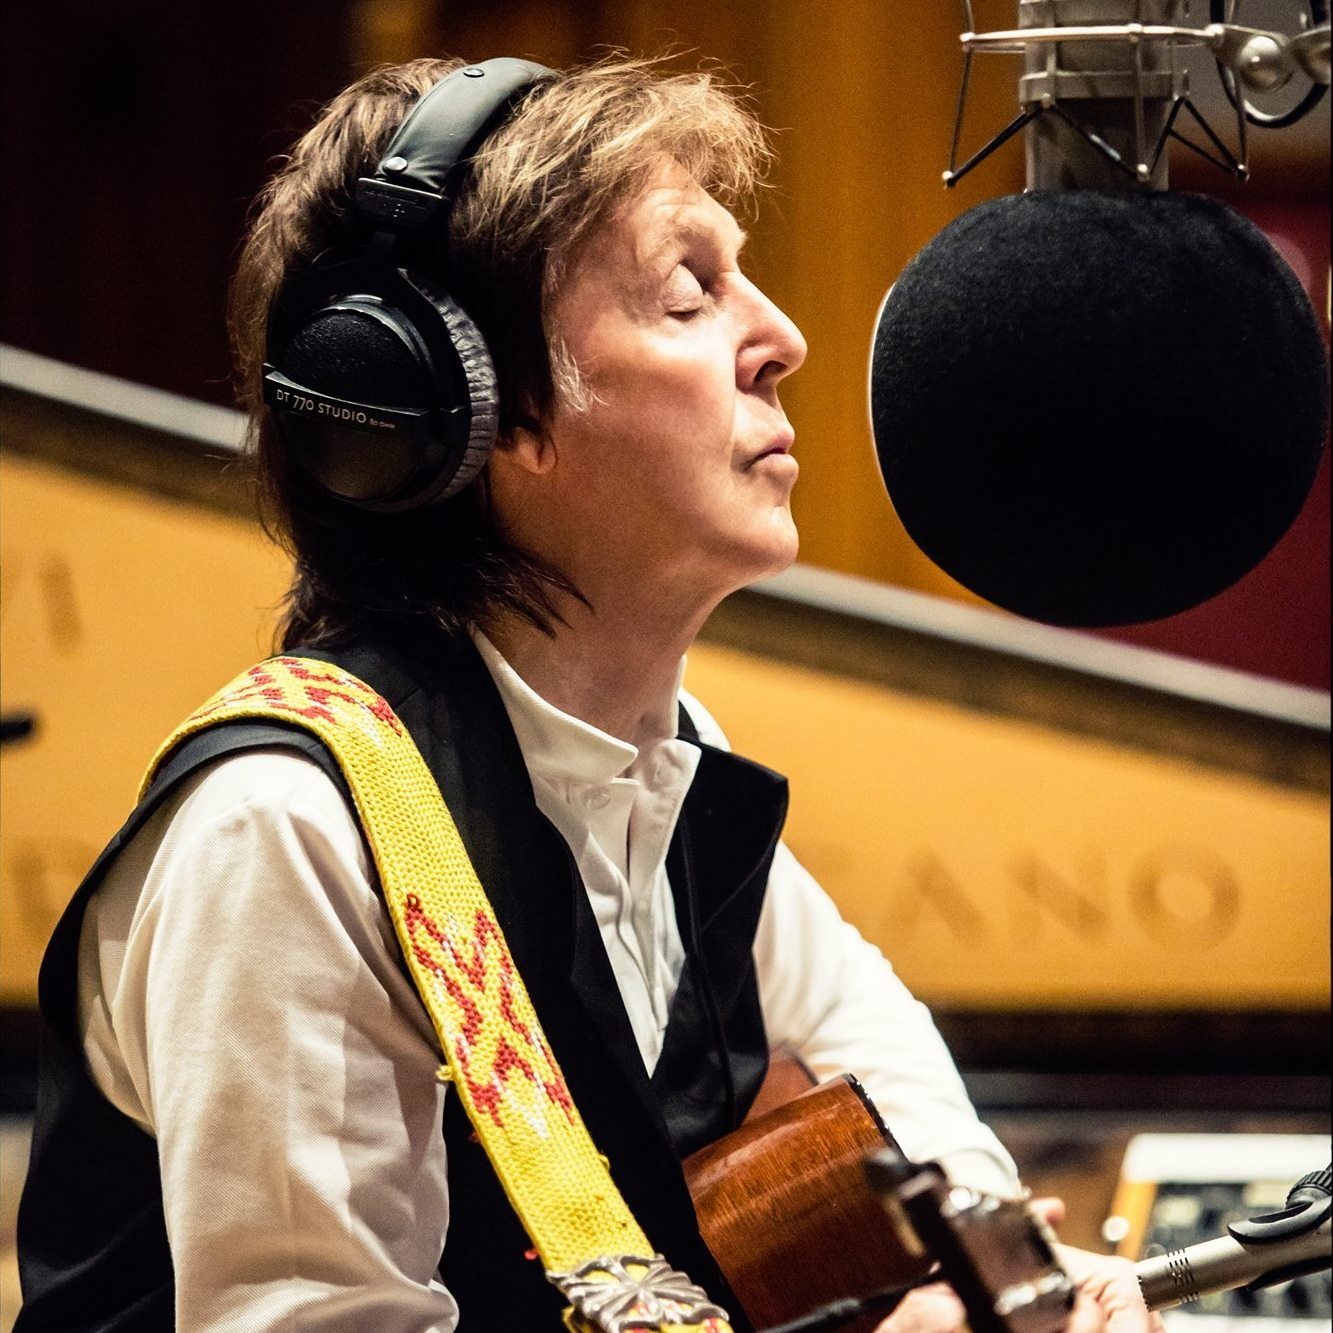 Paul McCartney Announces New Album 'Egypt Station' & Shares 2 Singles